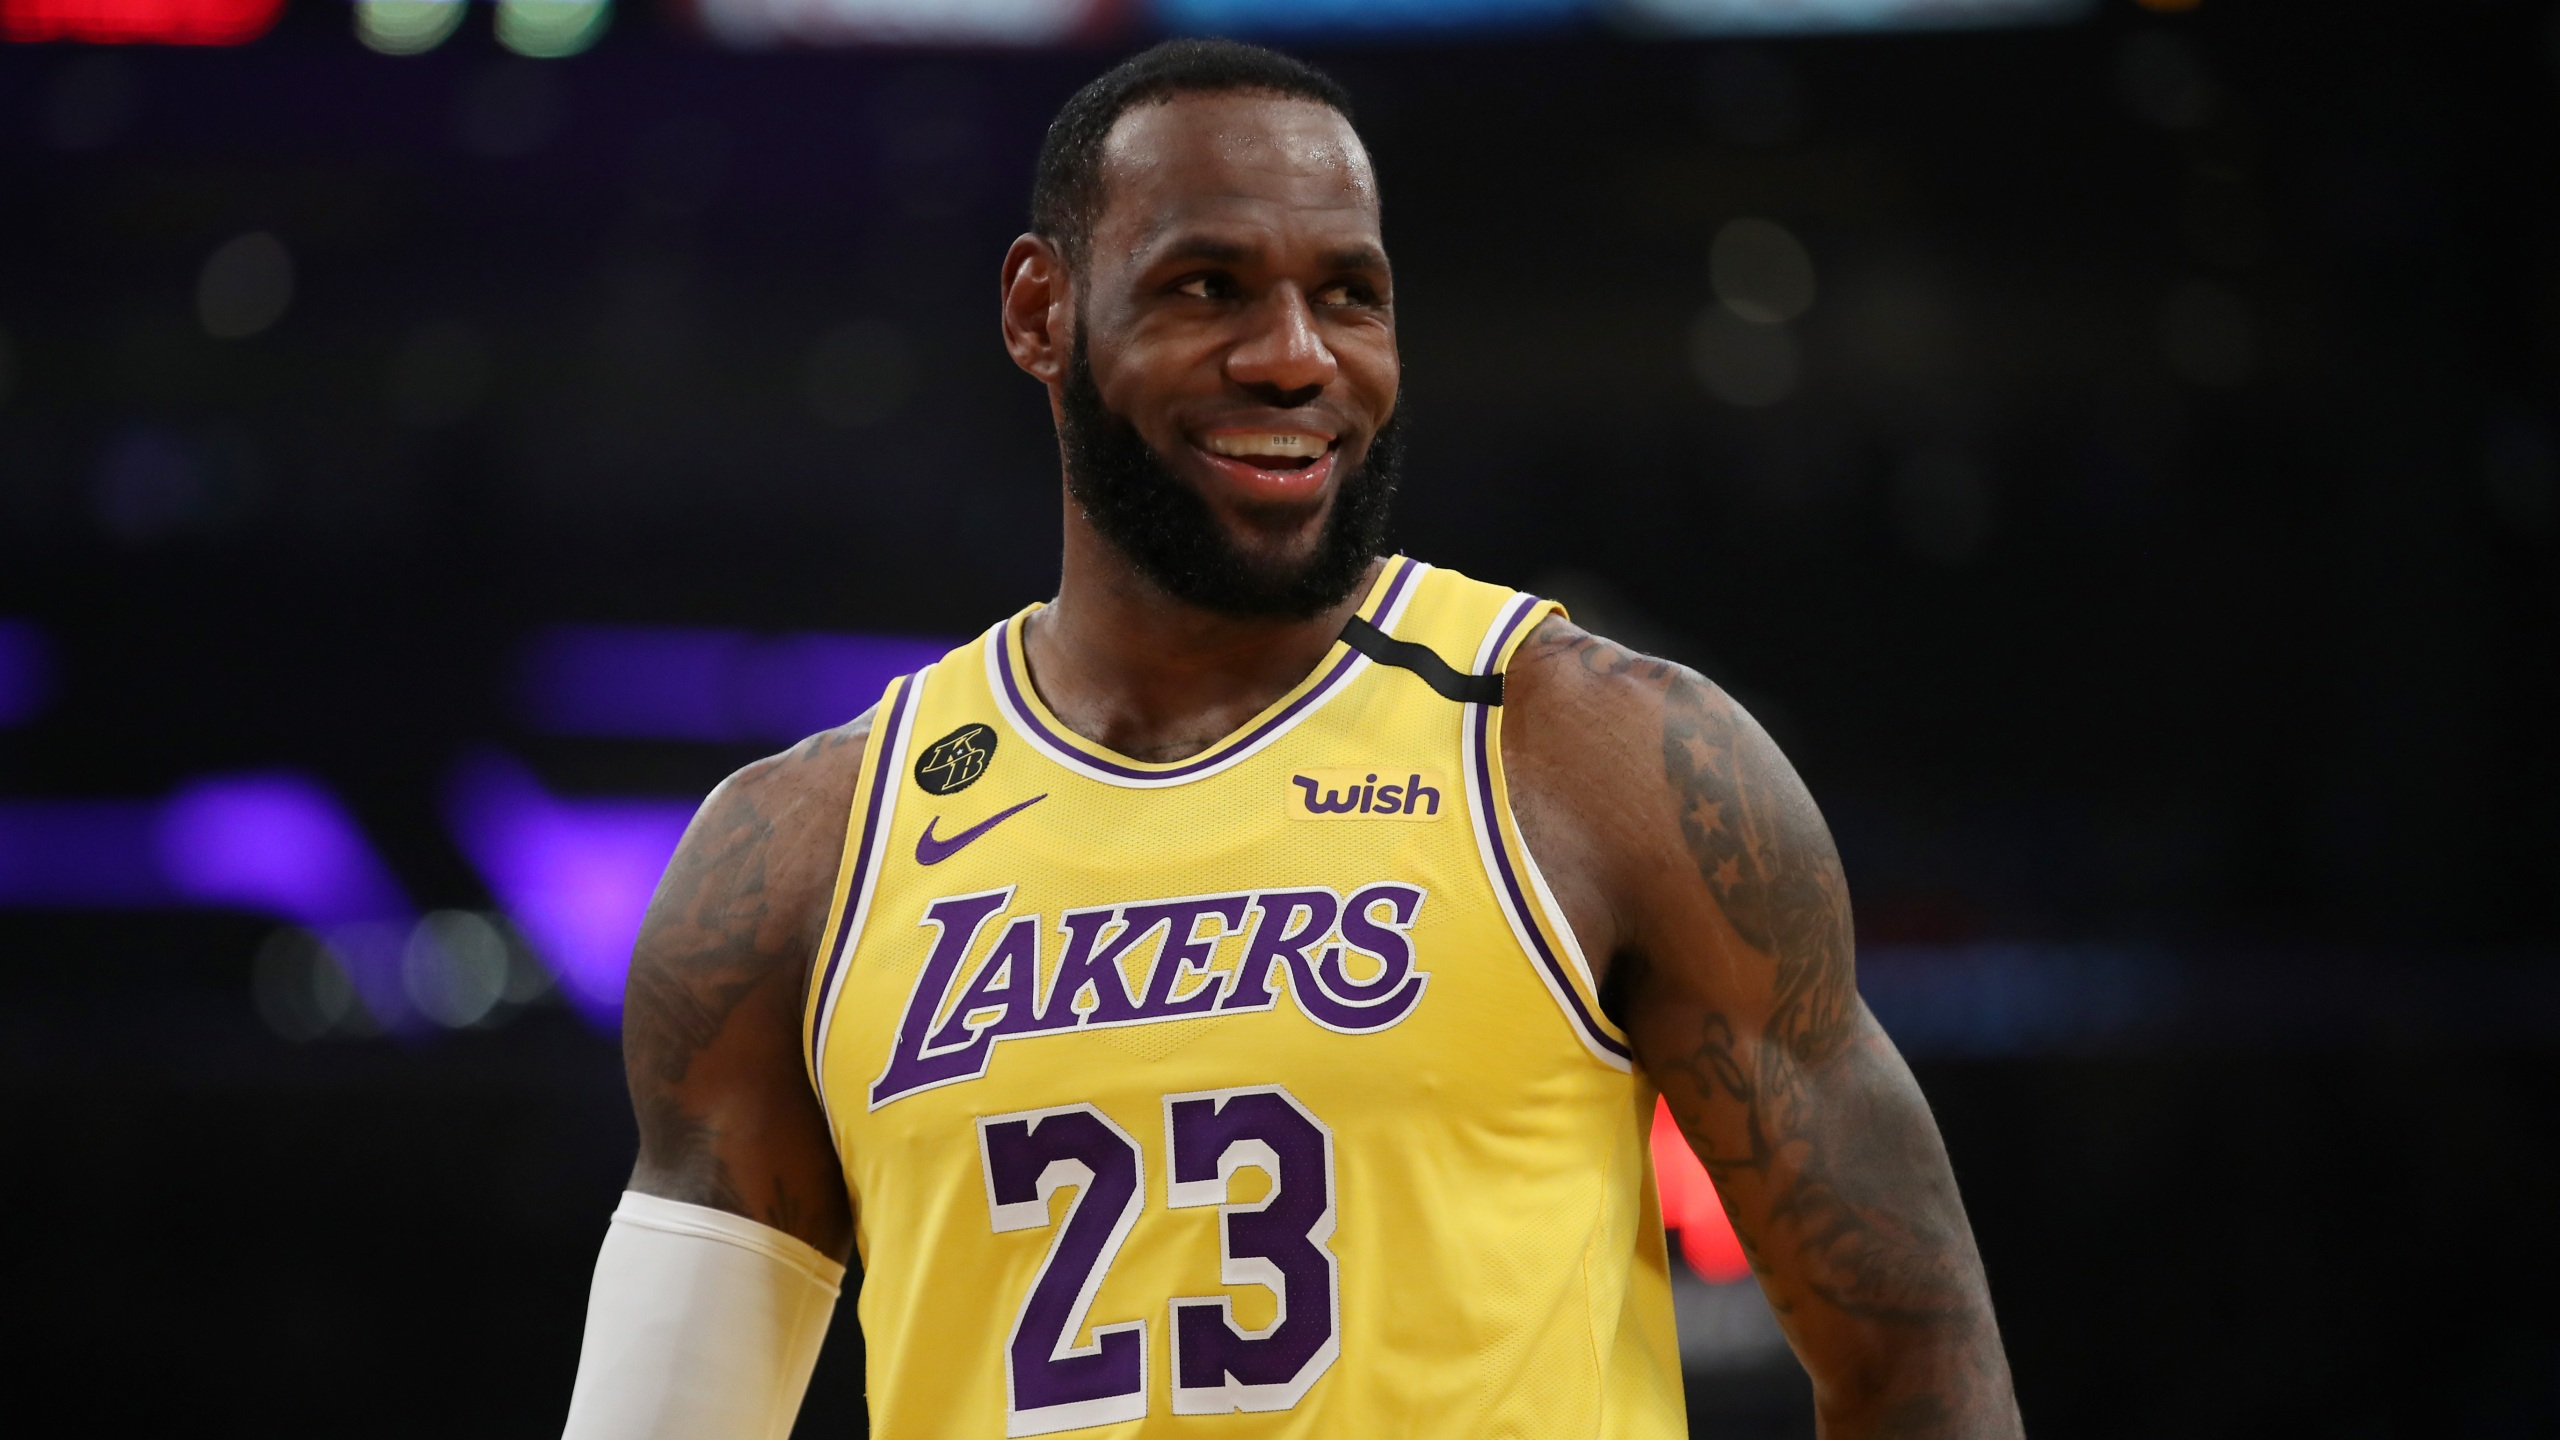 LeBron James of the Los Angeles Lakers stands on the court in a game against the Philadelphia 76ers during the first half at Staples Center on March 3, 2020, in Los Angeles. (Katelyn Mulcahy/Getty Images)